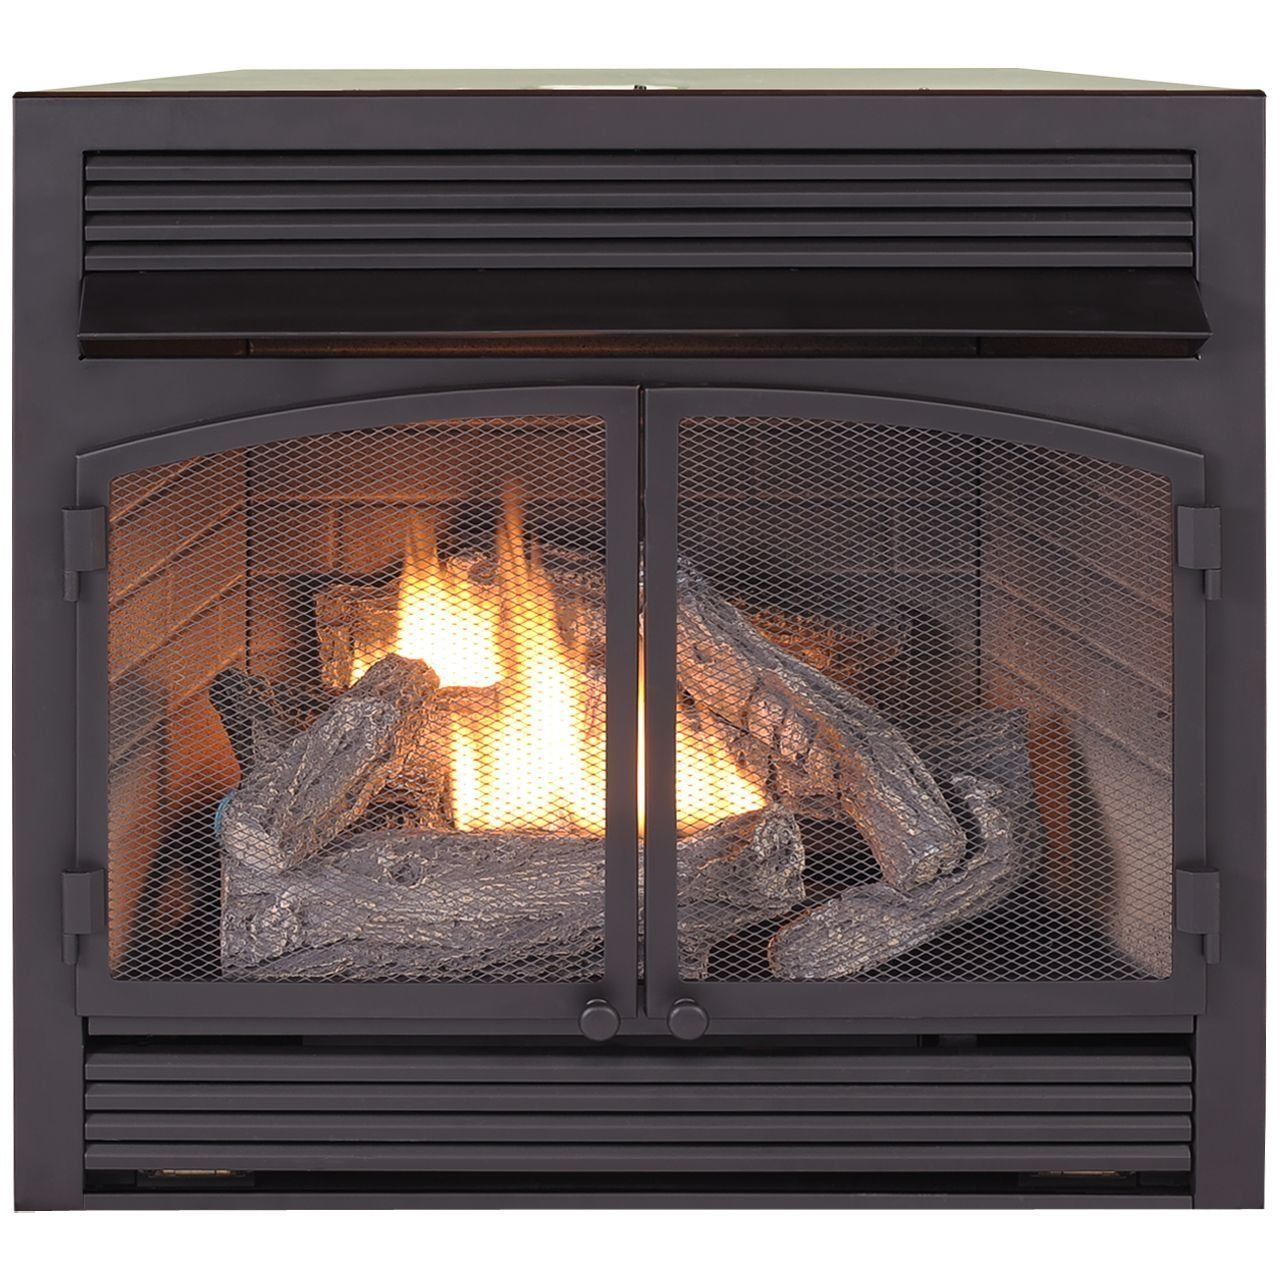 Wholesale Fireplace Inserts Dual Fuel Ventless Natural Gas Propane Fireplace Insert